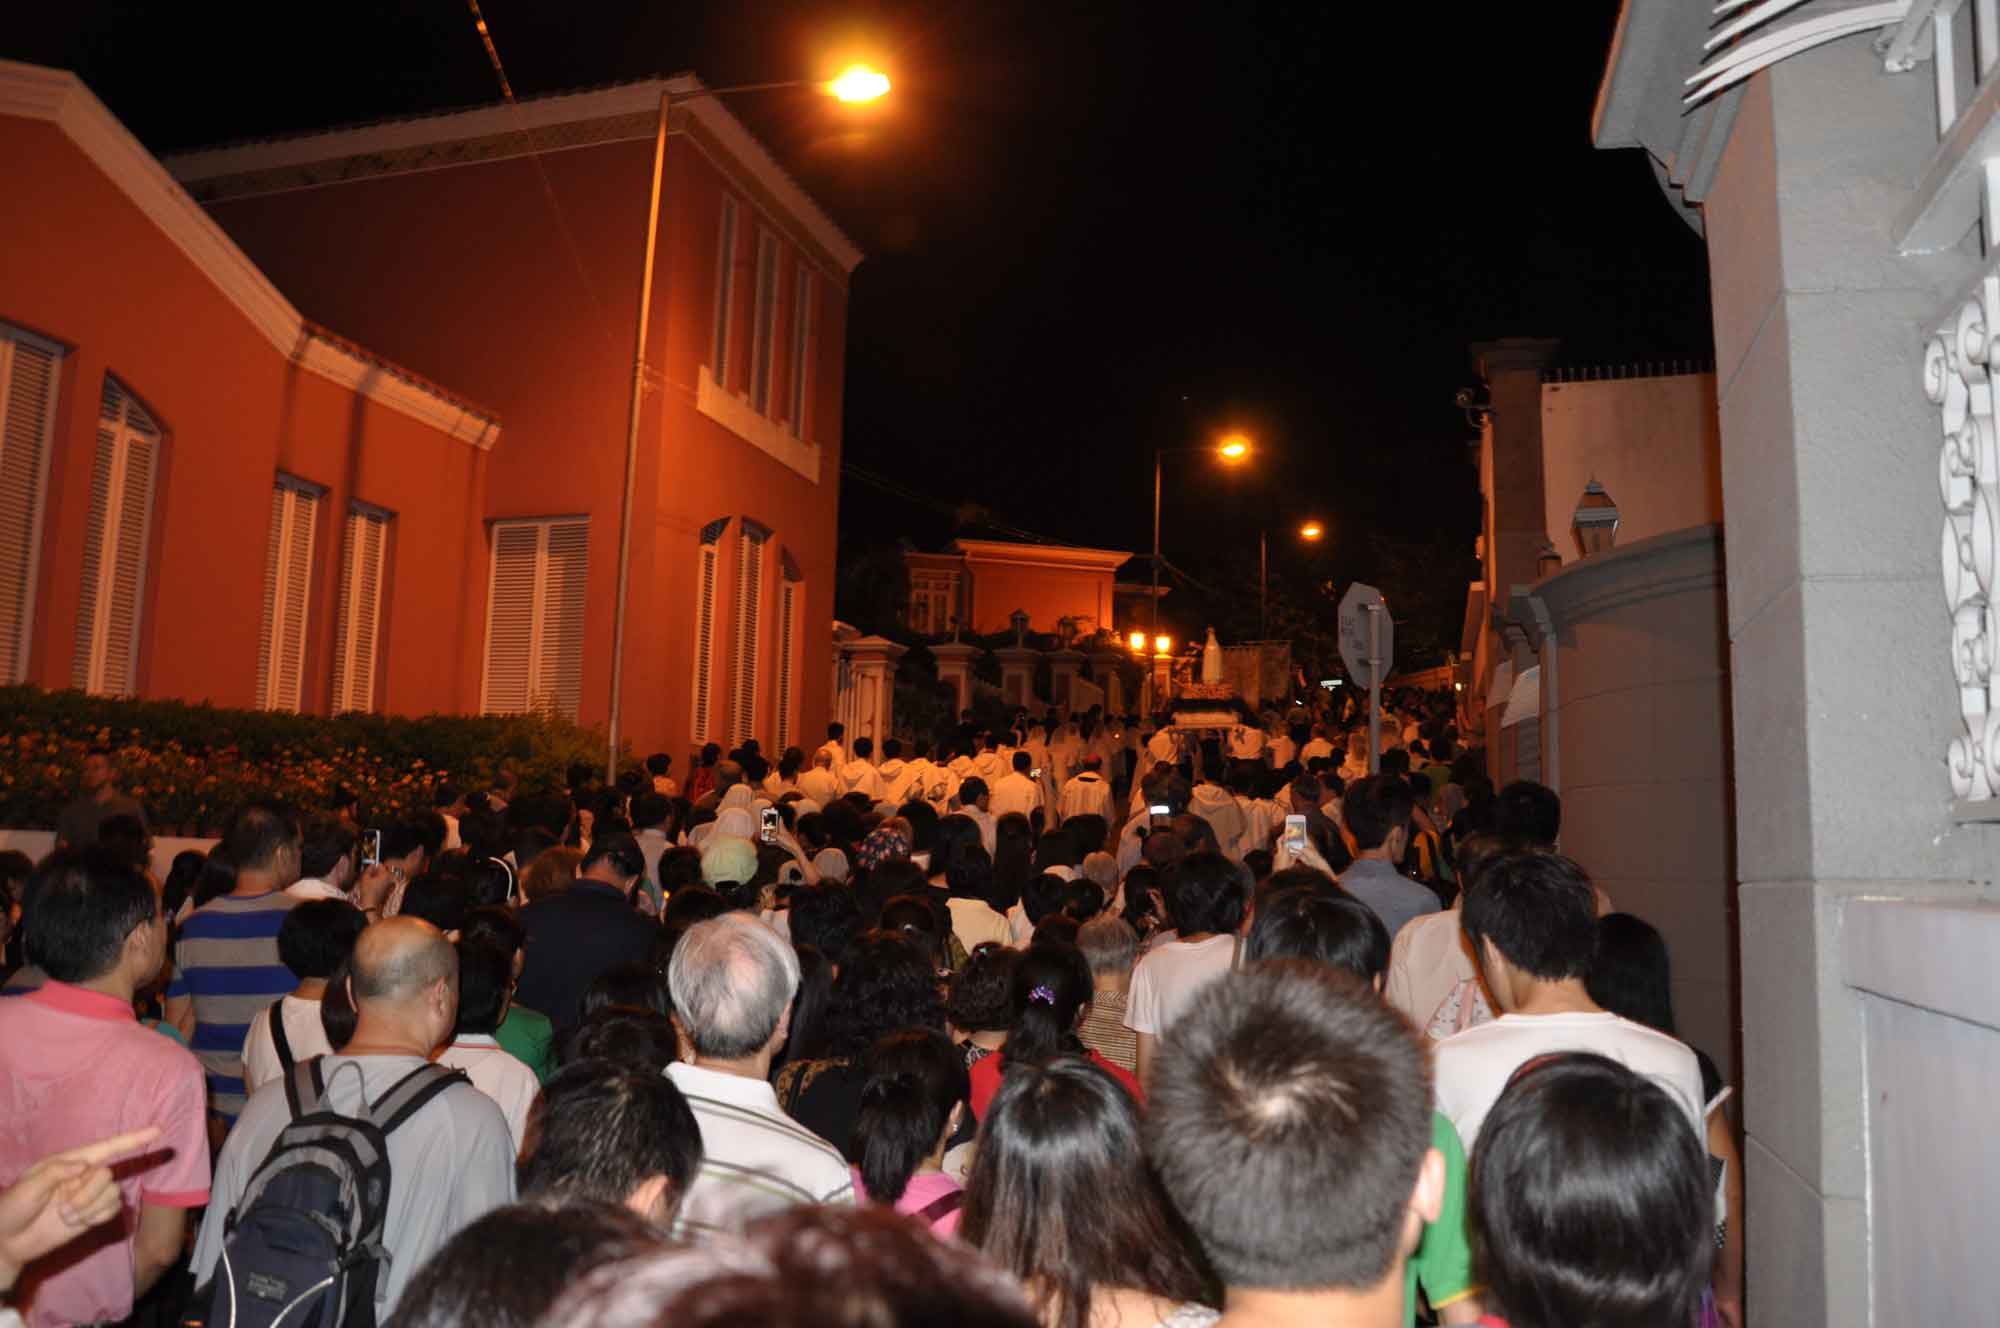 Macau's Our Lady of Fatima Procession on Penha Hill